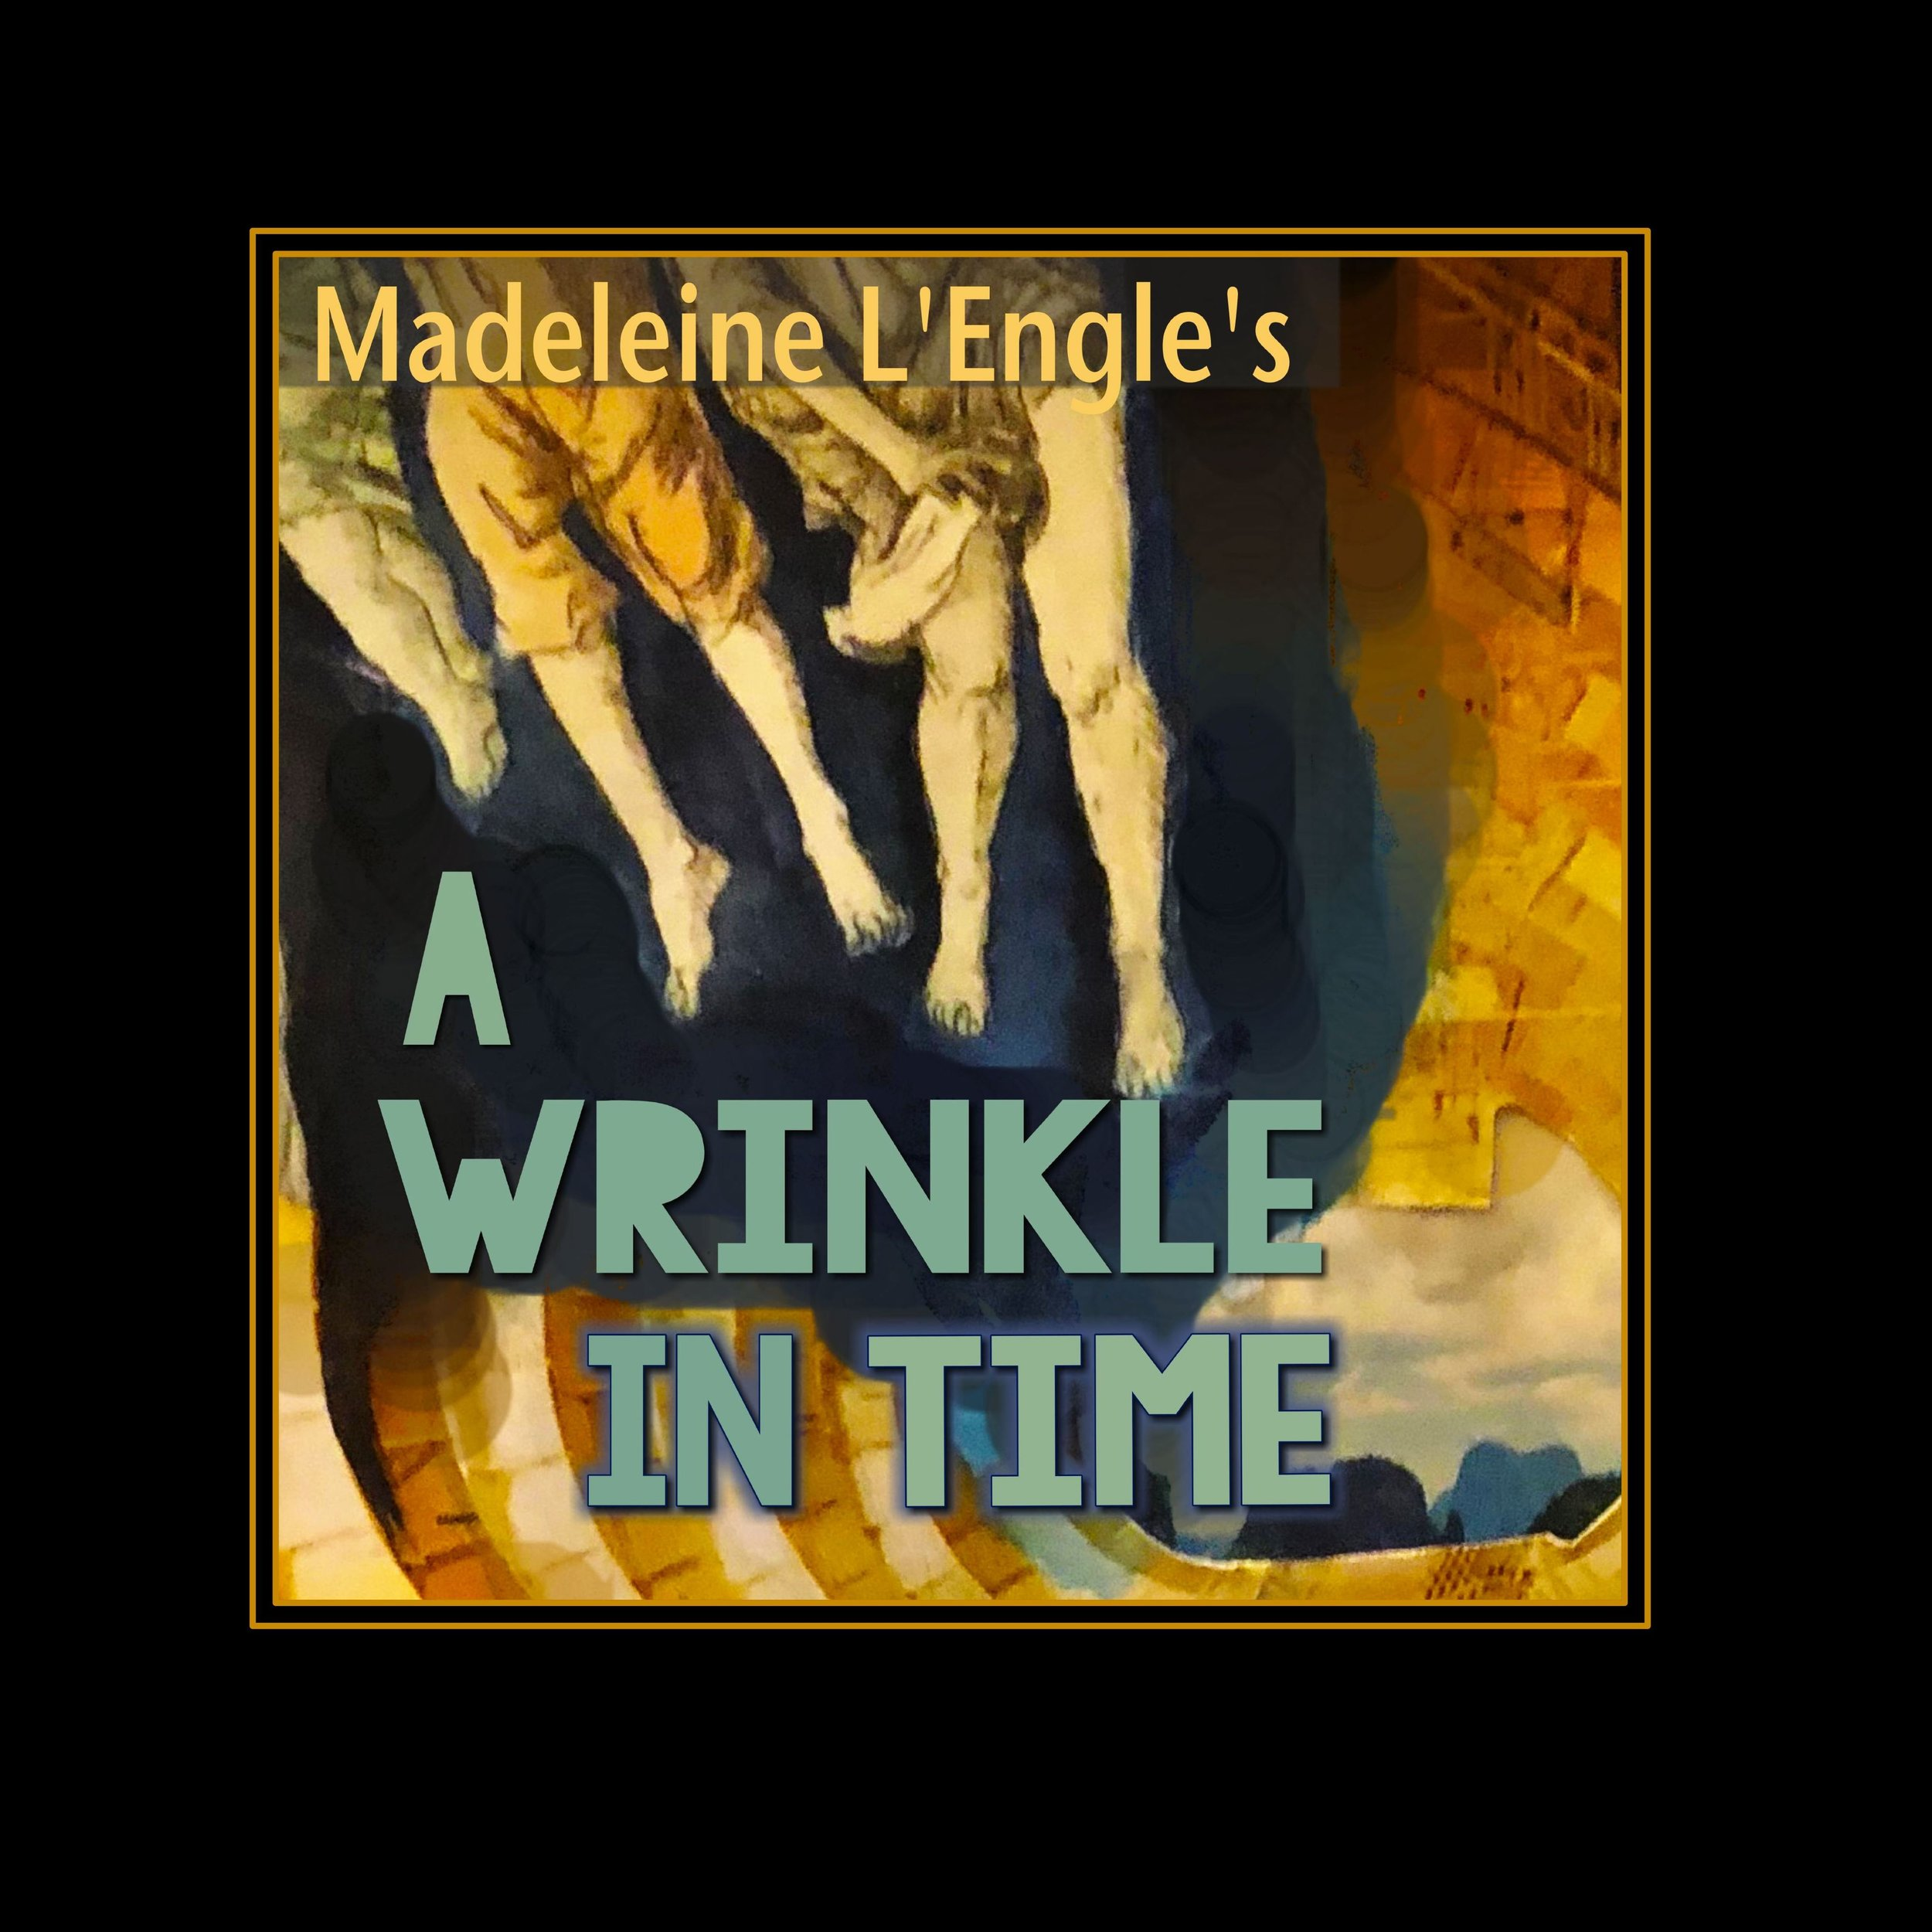 A Wrinkle in Time - adapted by Tracy YoungDirected by Katrina Spenceman and Julia TadlockWe know two things for sure: 1. Love CAN overcome evil and 2. There IS such a thing as a tesseract.PERFORMANCES: Friday, March 8th 7pm + Saturday, March 9th 2pm & 7pm + Friday, March 15th 7pm + Saturday, March 16th 2pm & 7pmTICKETS: Adults $11 Seniors $10 Students $7Sponsored by Berkley & Veller Greenwood Country Realtors